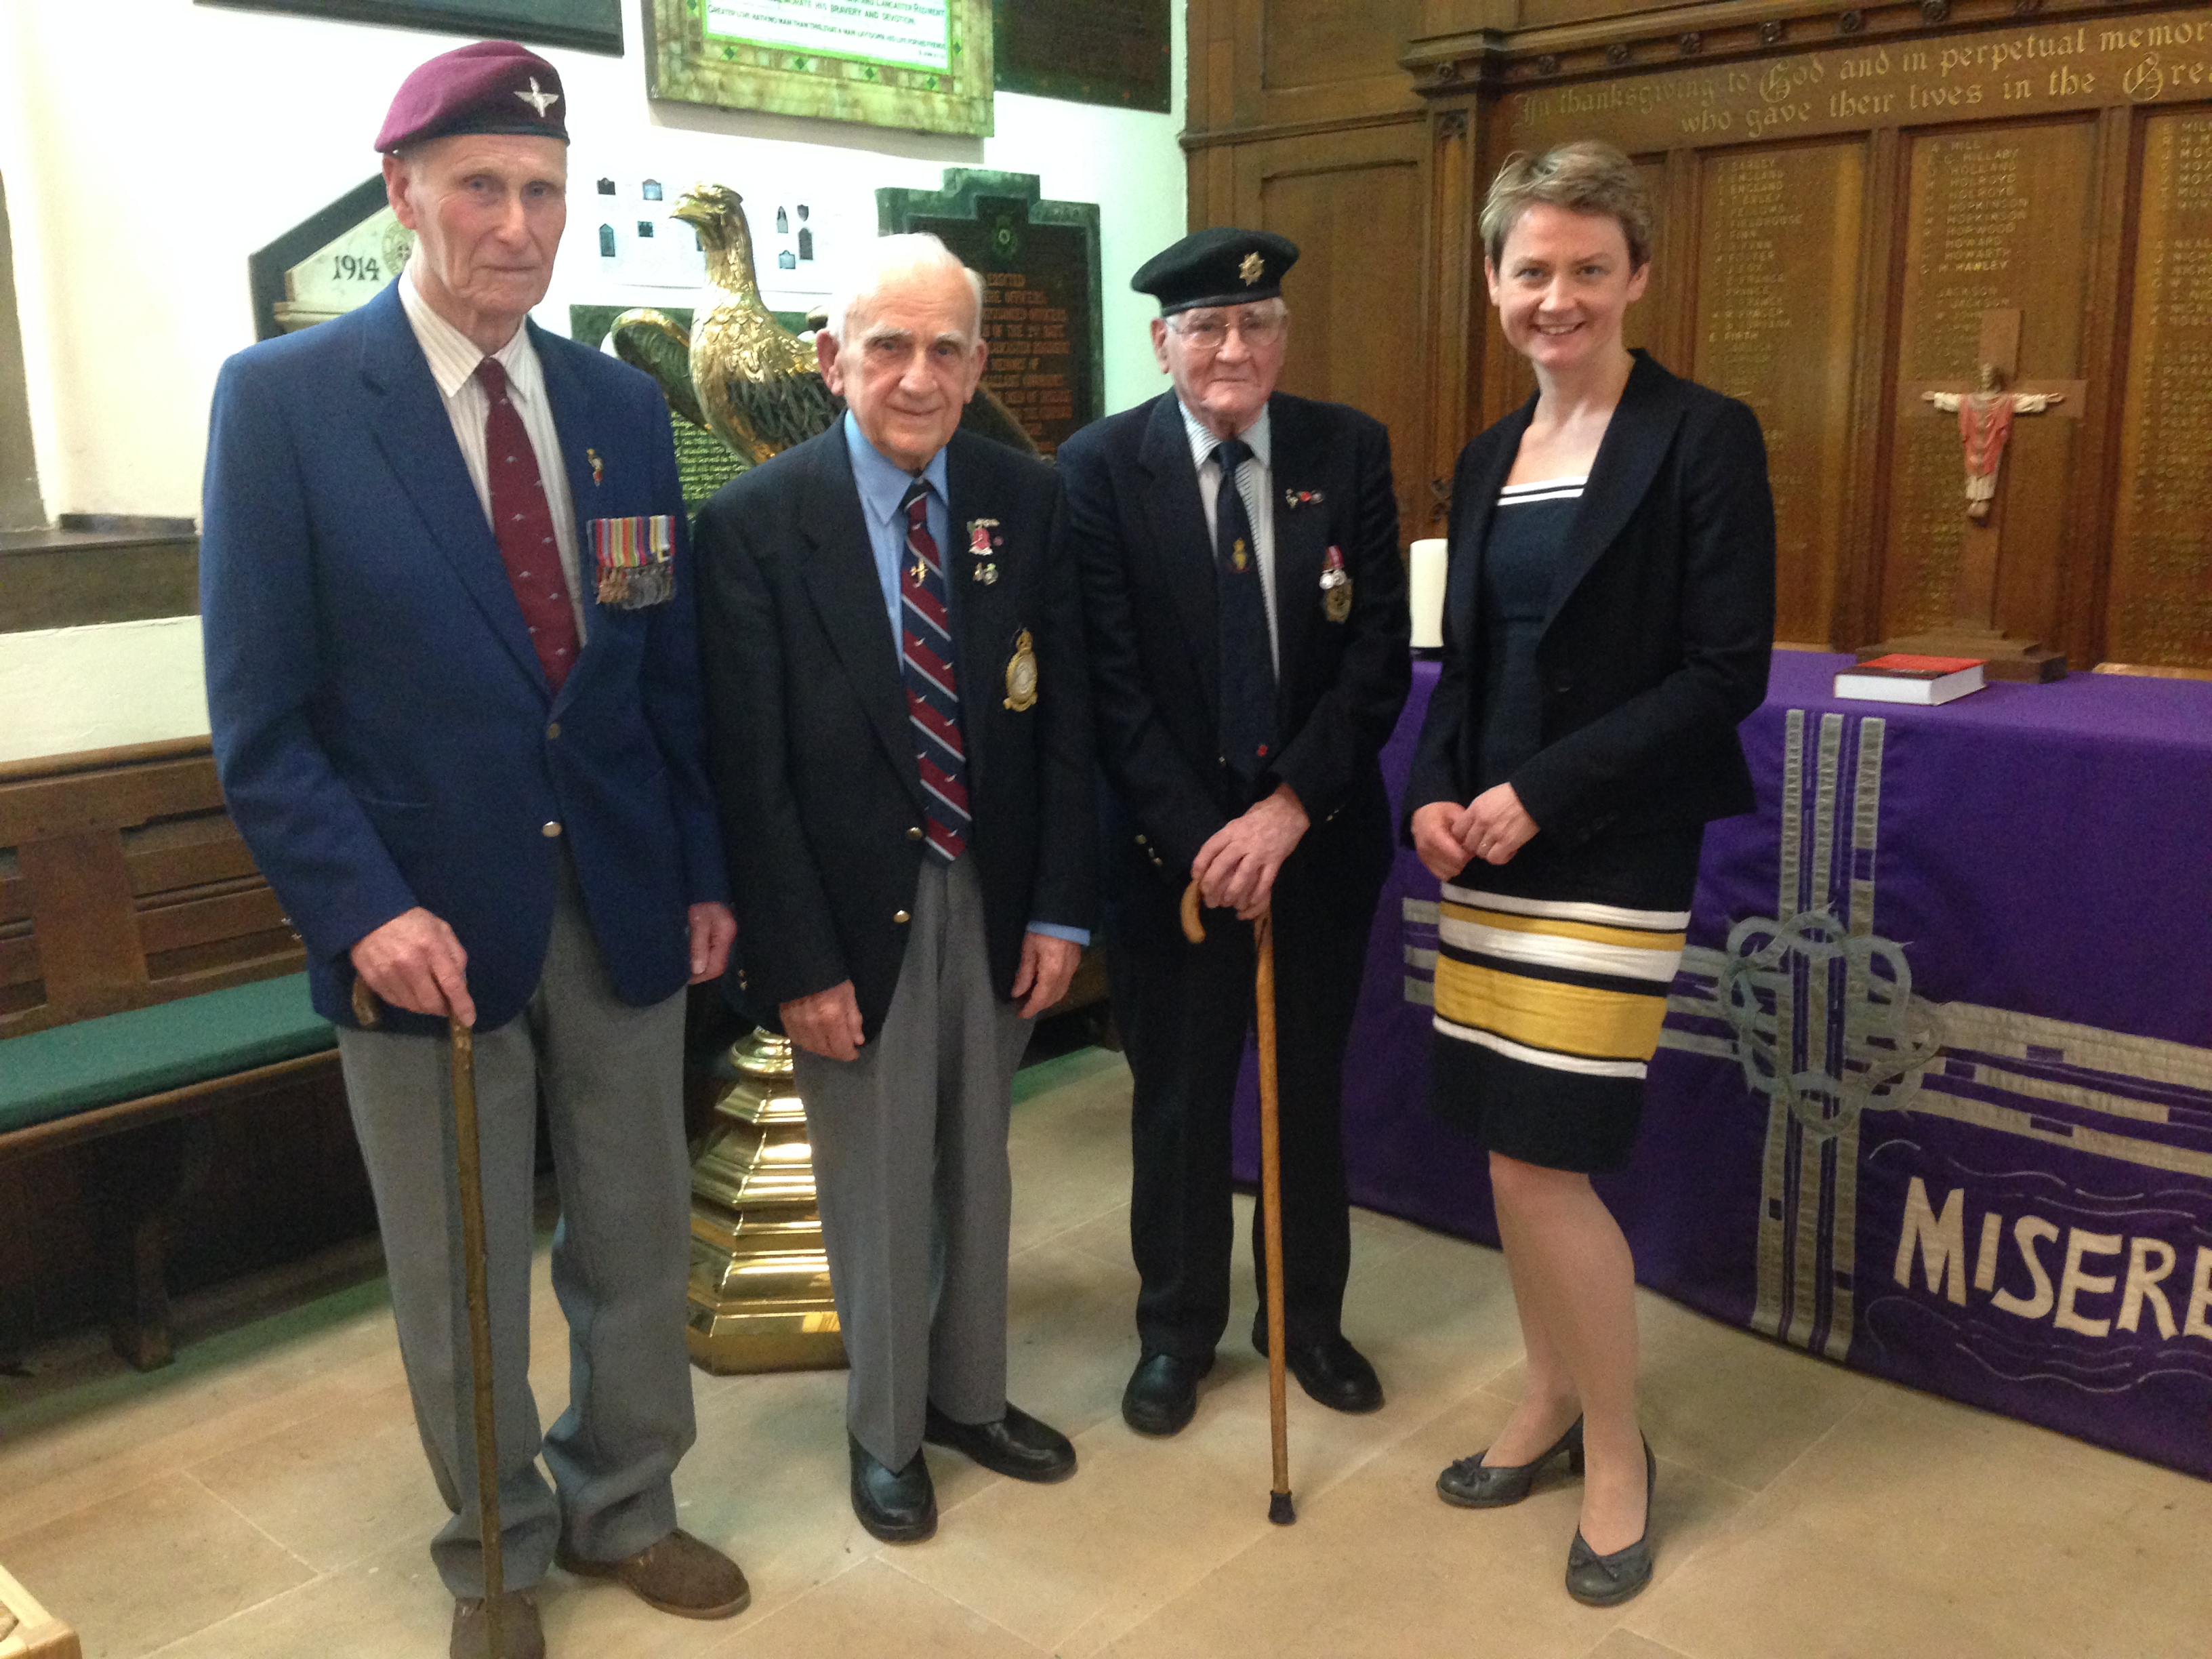 Yvette with WW2 veterans